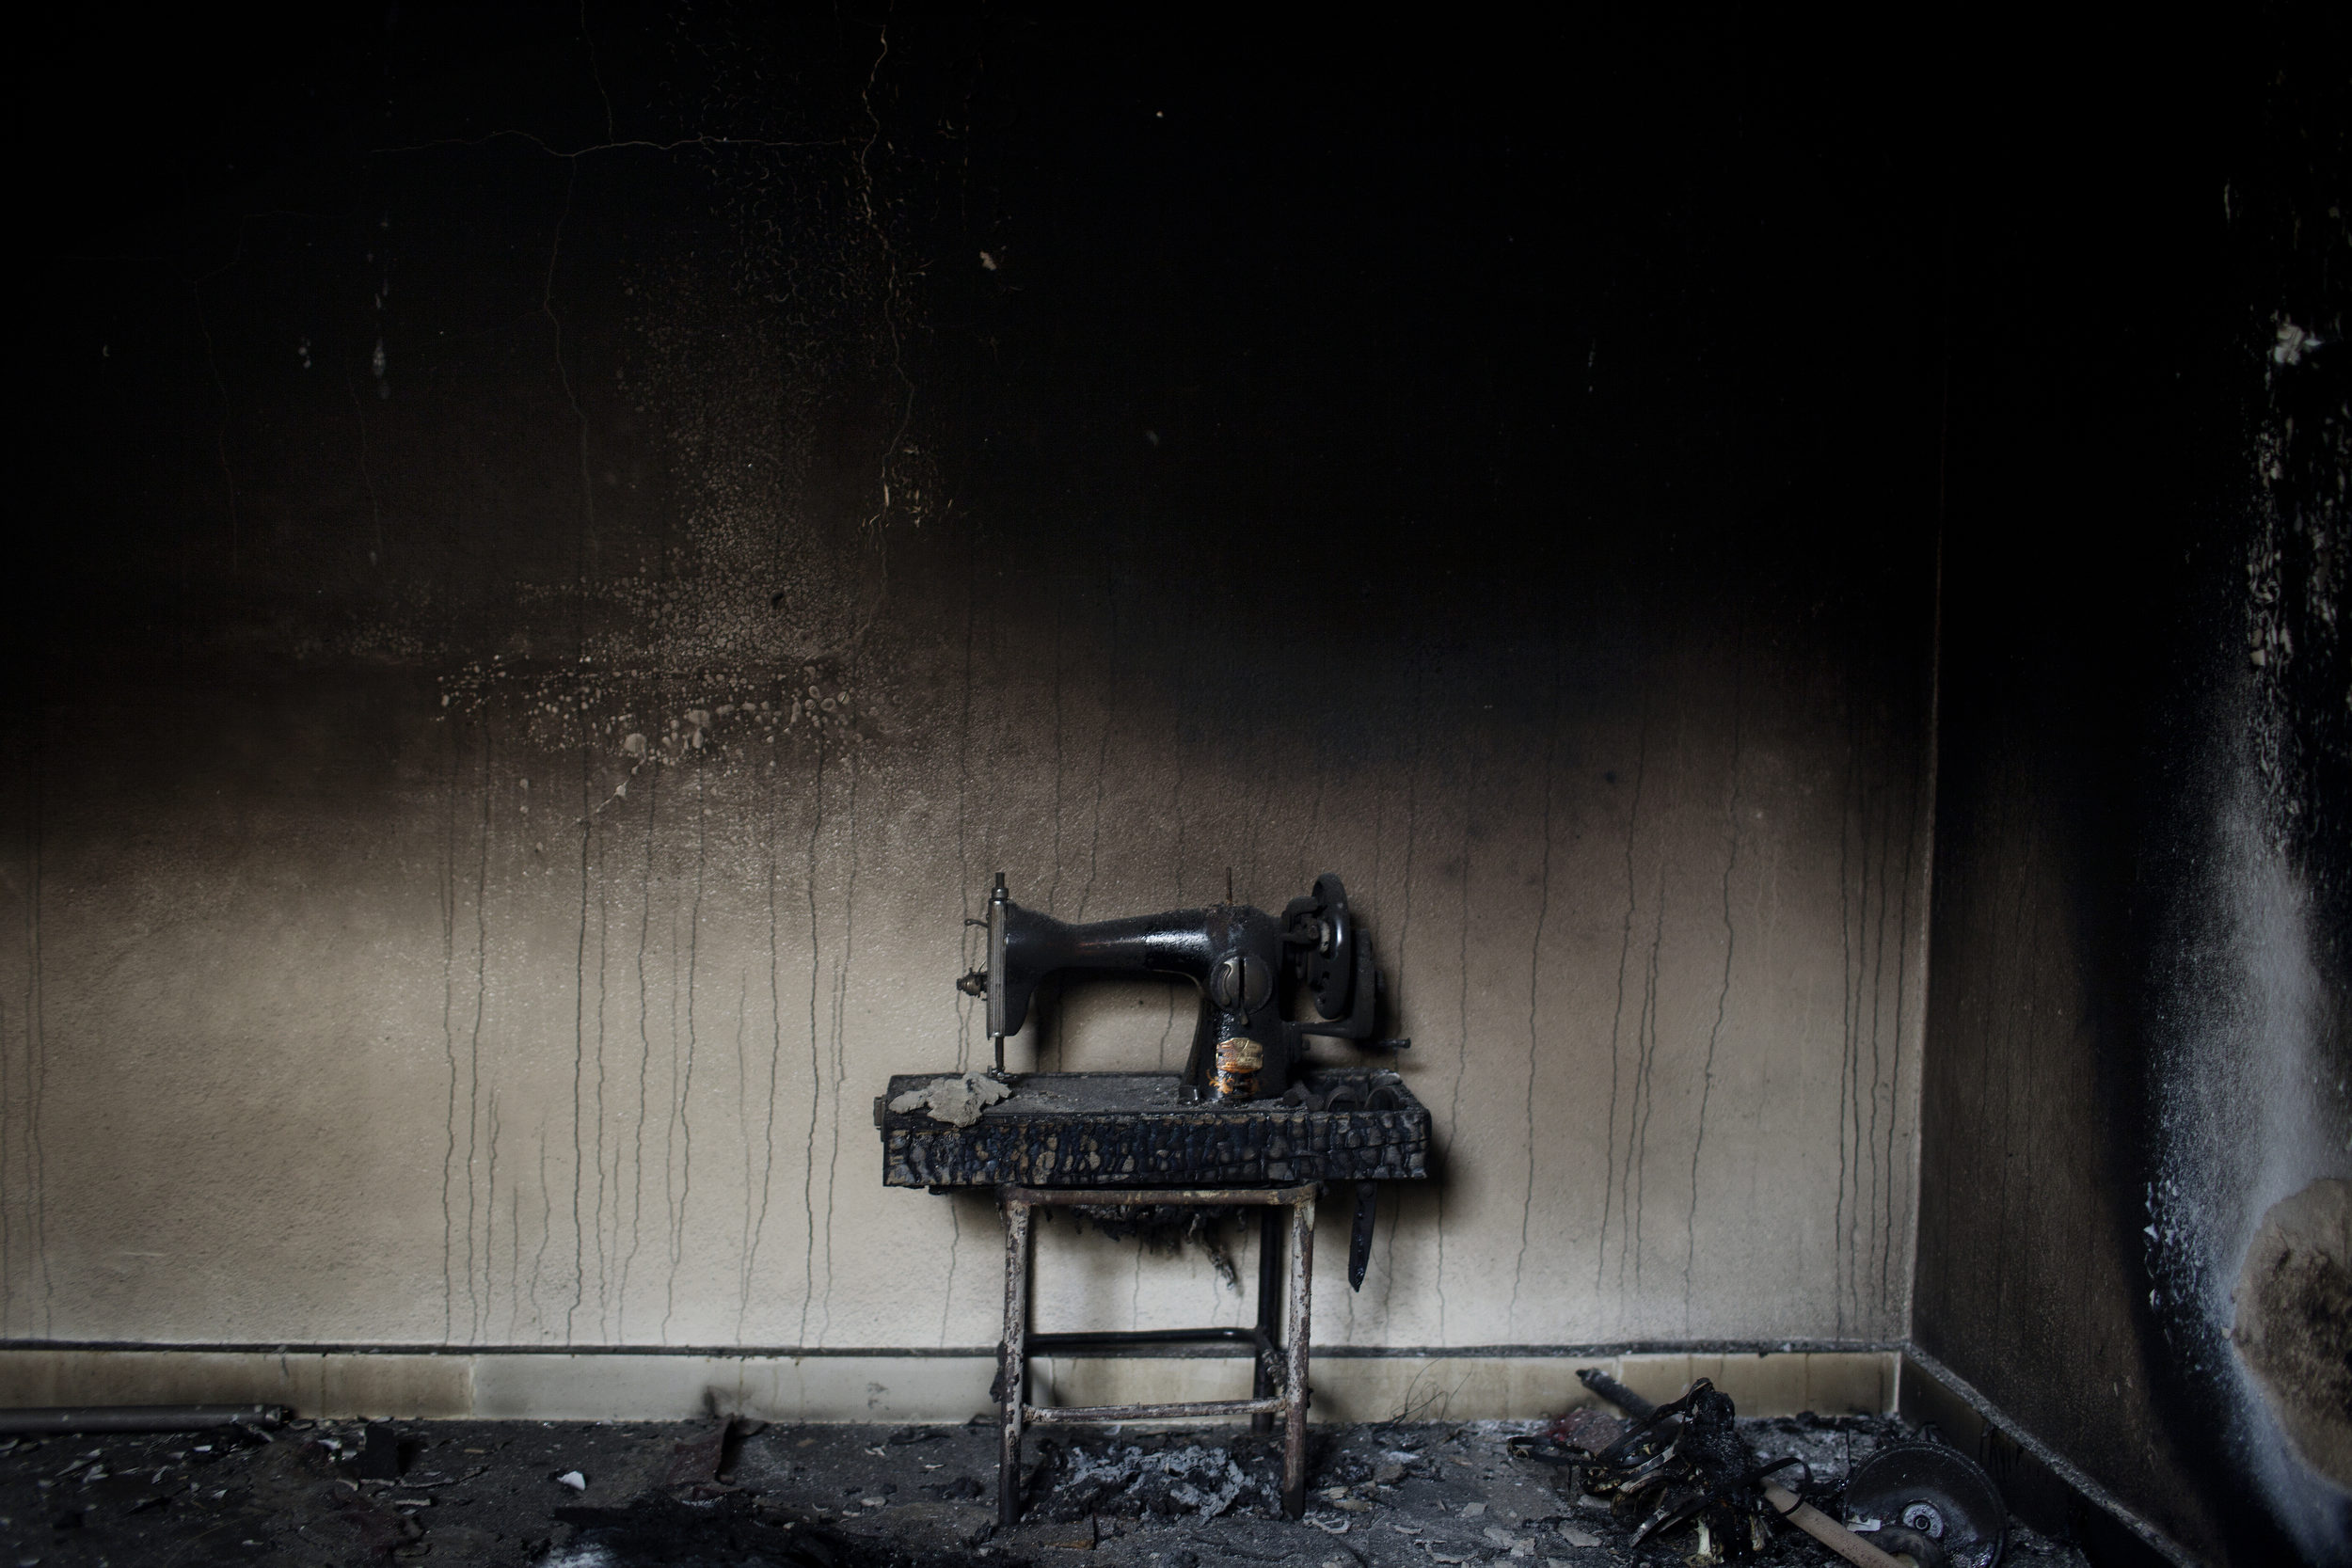 Sewing machine in a home destroyed by the regime, Kili.